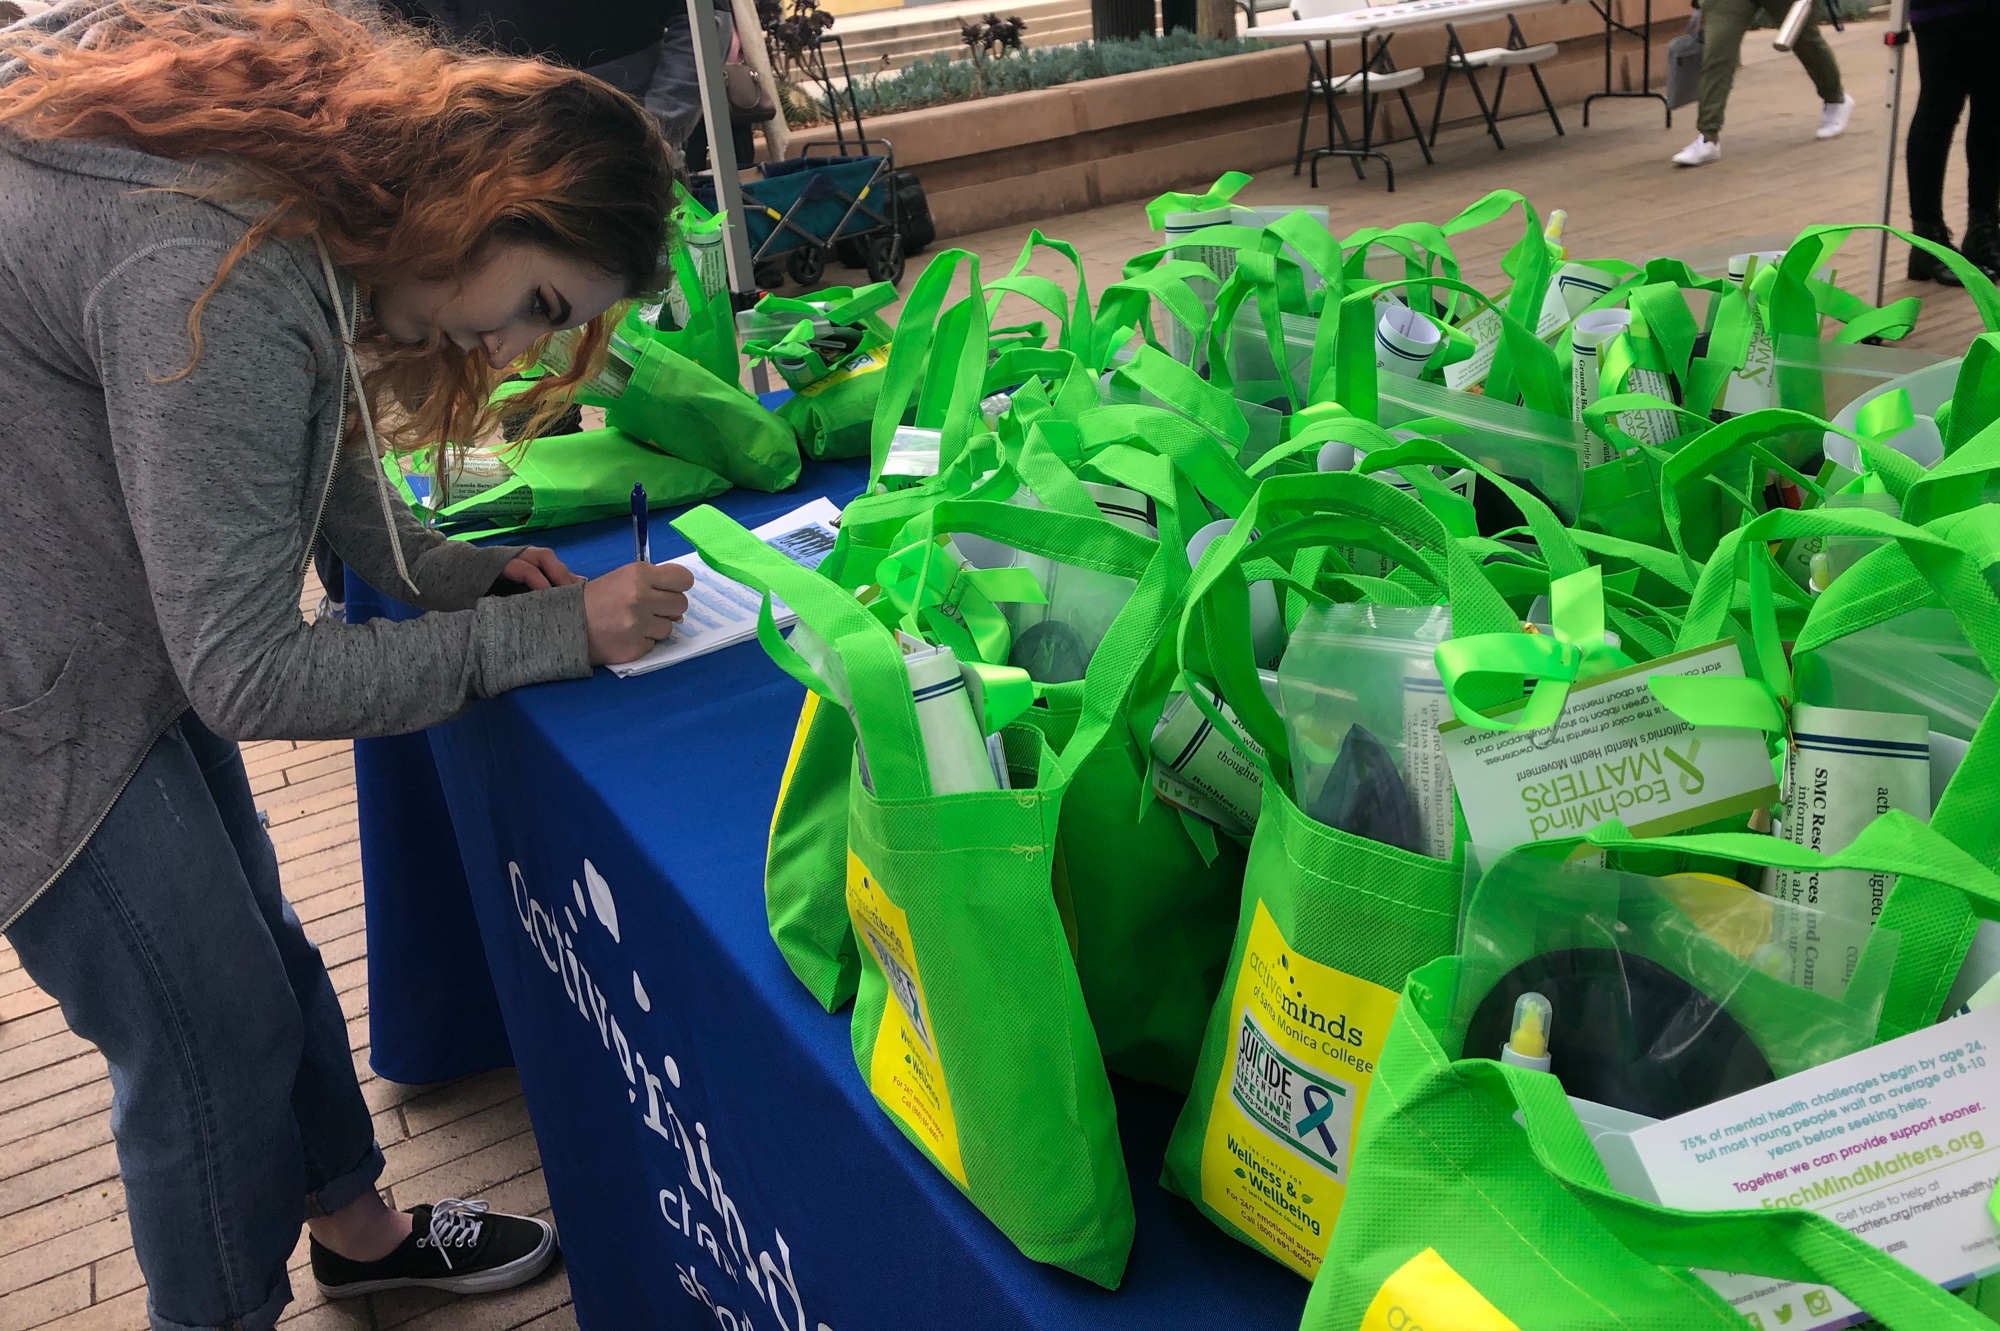 Student Skyler Stark signing up to get a free self-care kit, at Active Minds of SMC's event on Thursday, May 24th, 2018 at Santa Monica College, in Santa Monica, California. (Jennifer Nystrom/Corsair Photo)